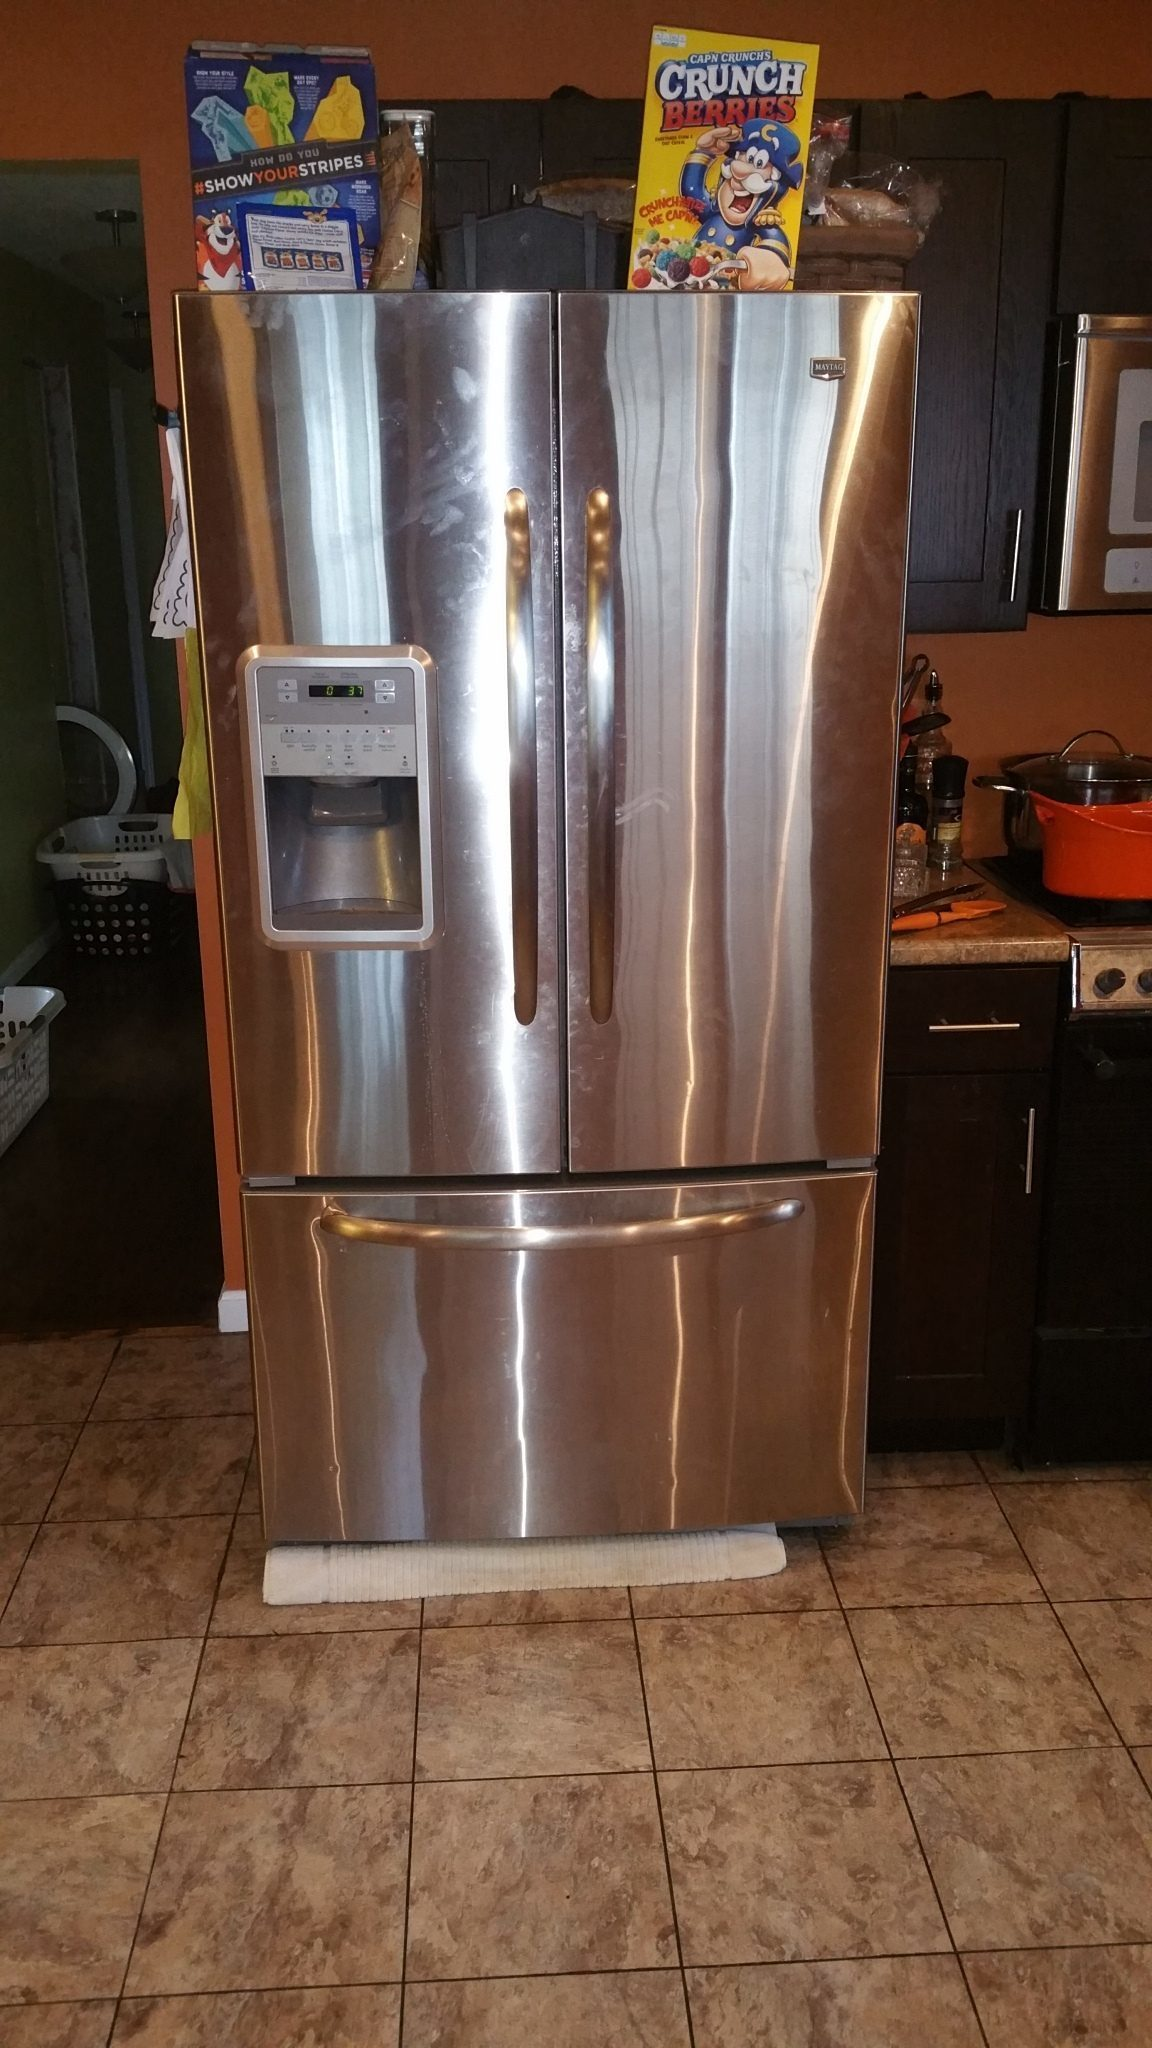 Maytag french door refrigerator reviews - The Icemaker Dropped A Piece Of Plastic Again As I Reported In 2013 And Now I Find Out The Bottom Pan Is Too Small That S Why It S Been Leaking Since I